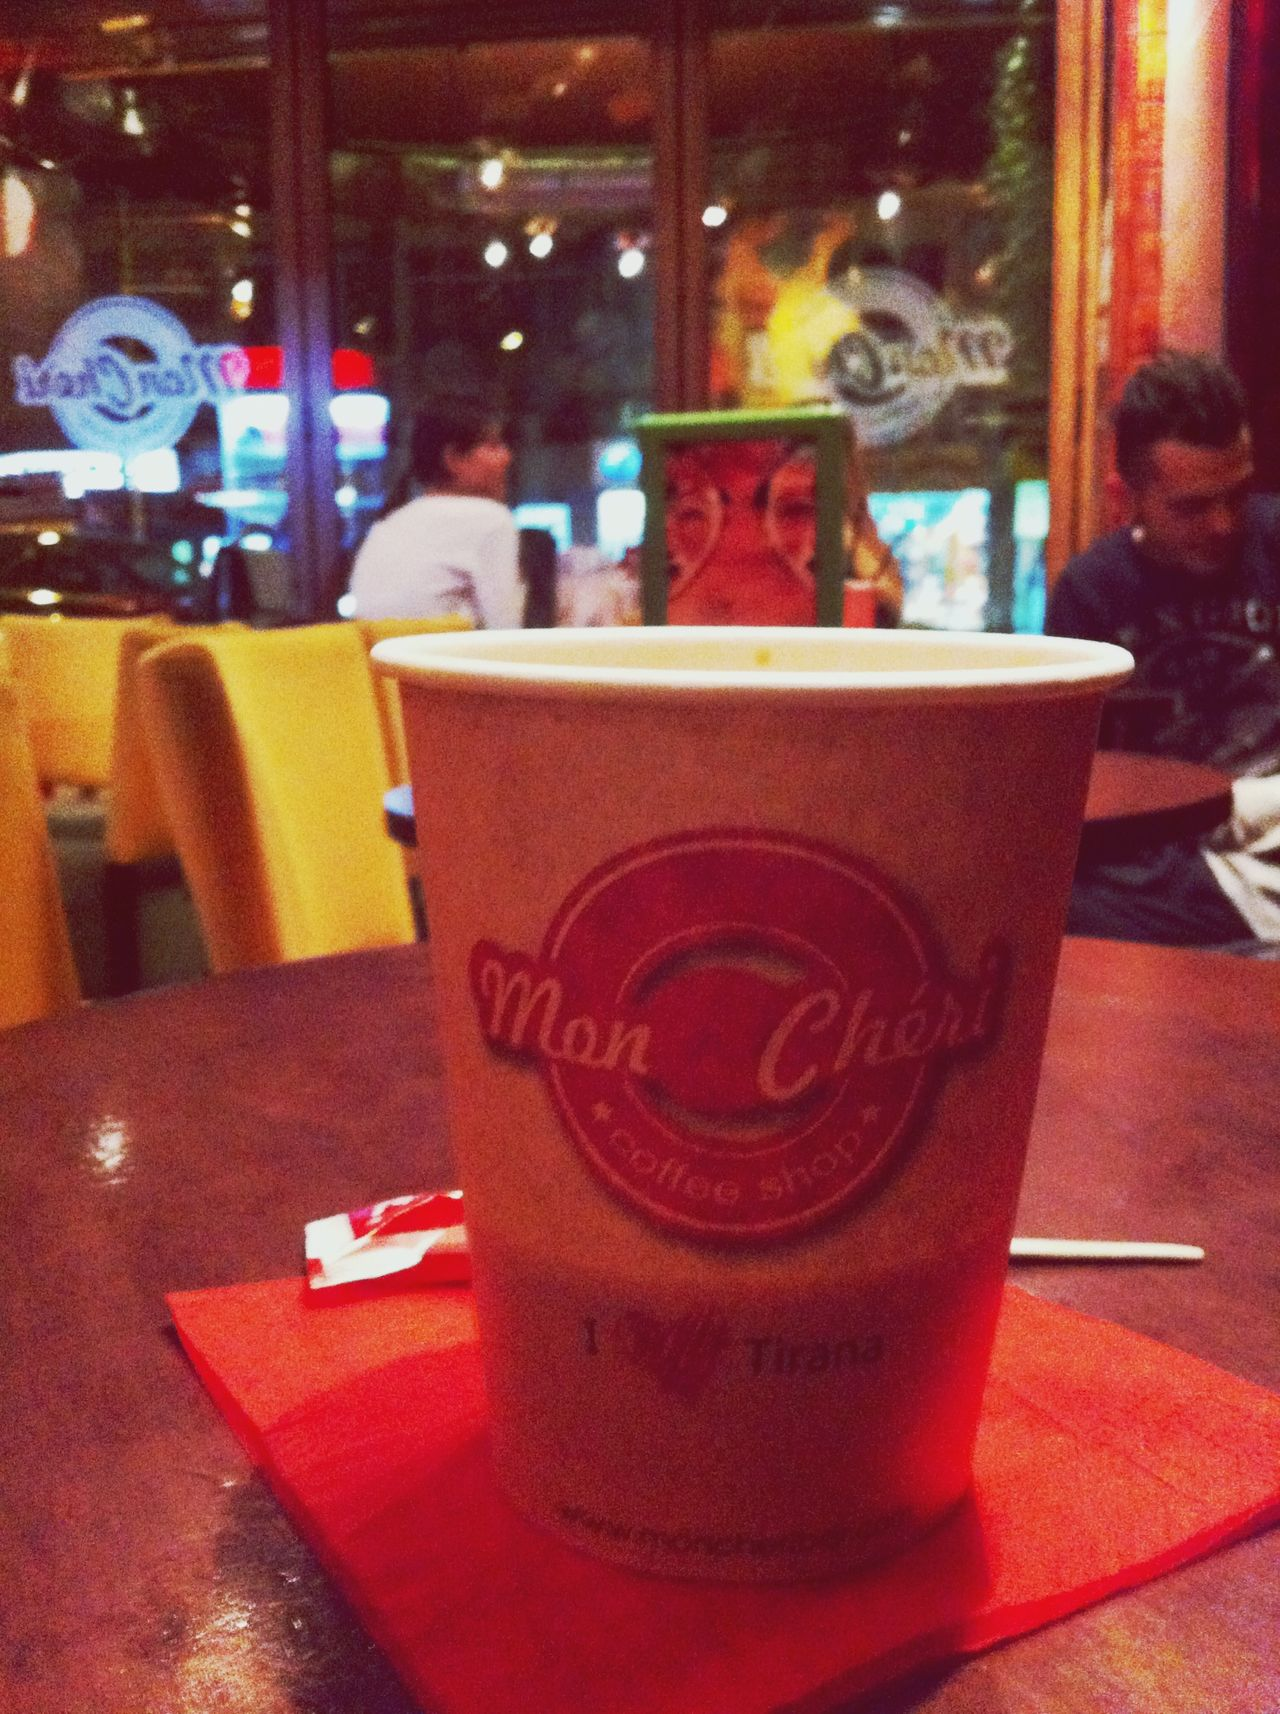 American Coffee Coffee Coffee Time Tirana Albania Mon Cheri I ❤️ Tirana Slightly Out Of Focus The Places I've Been Today Chilling